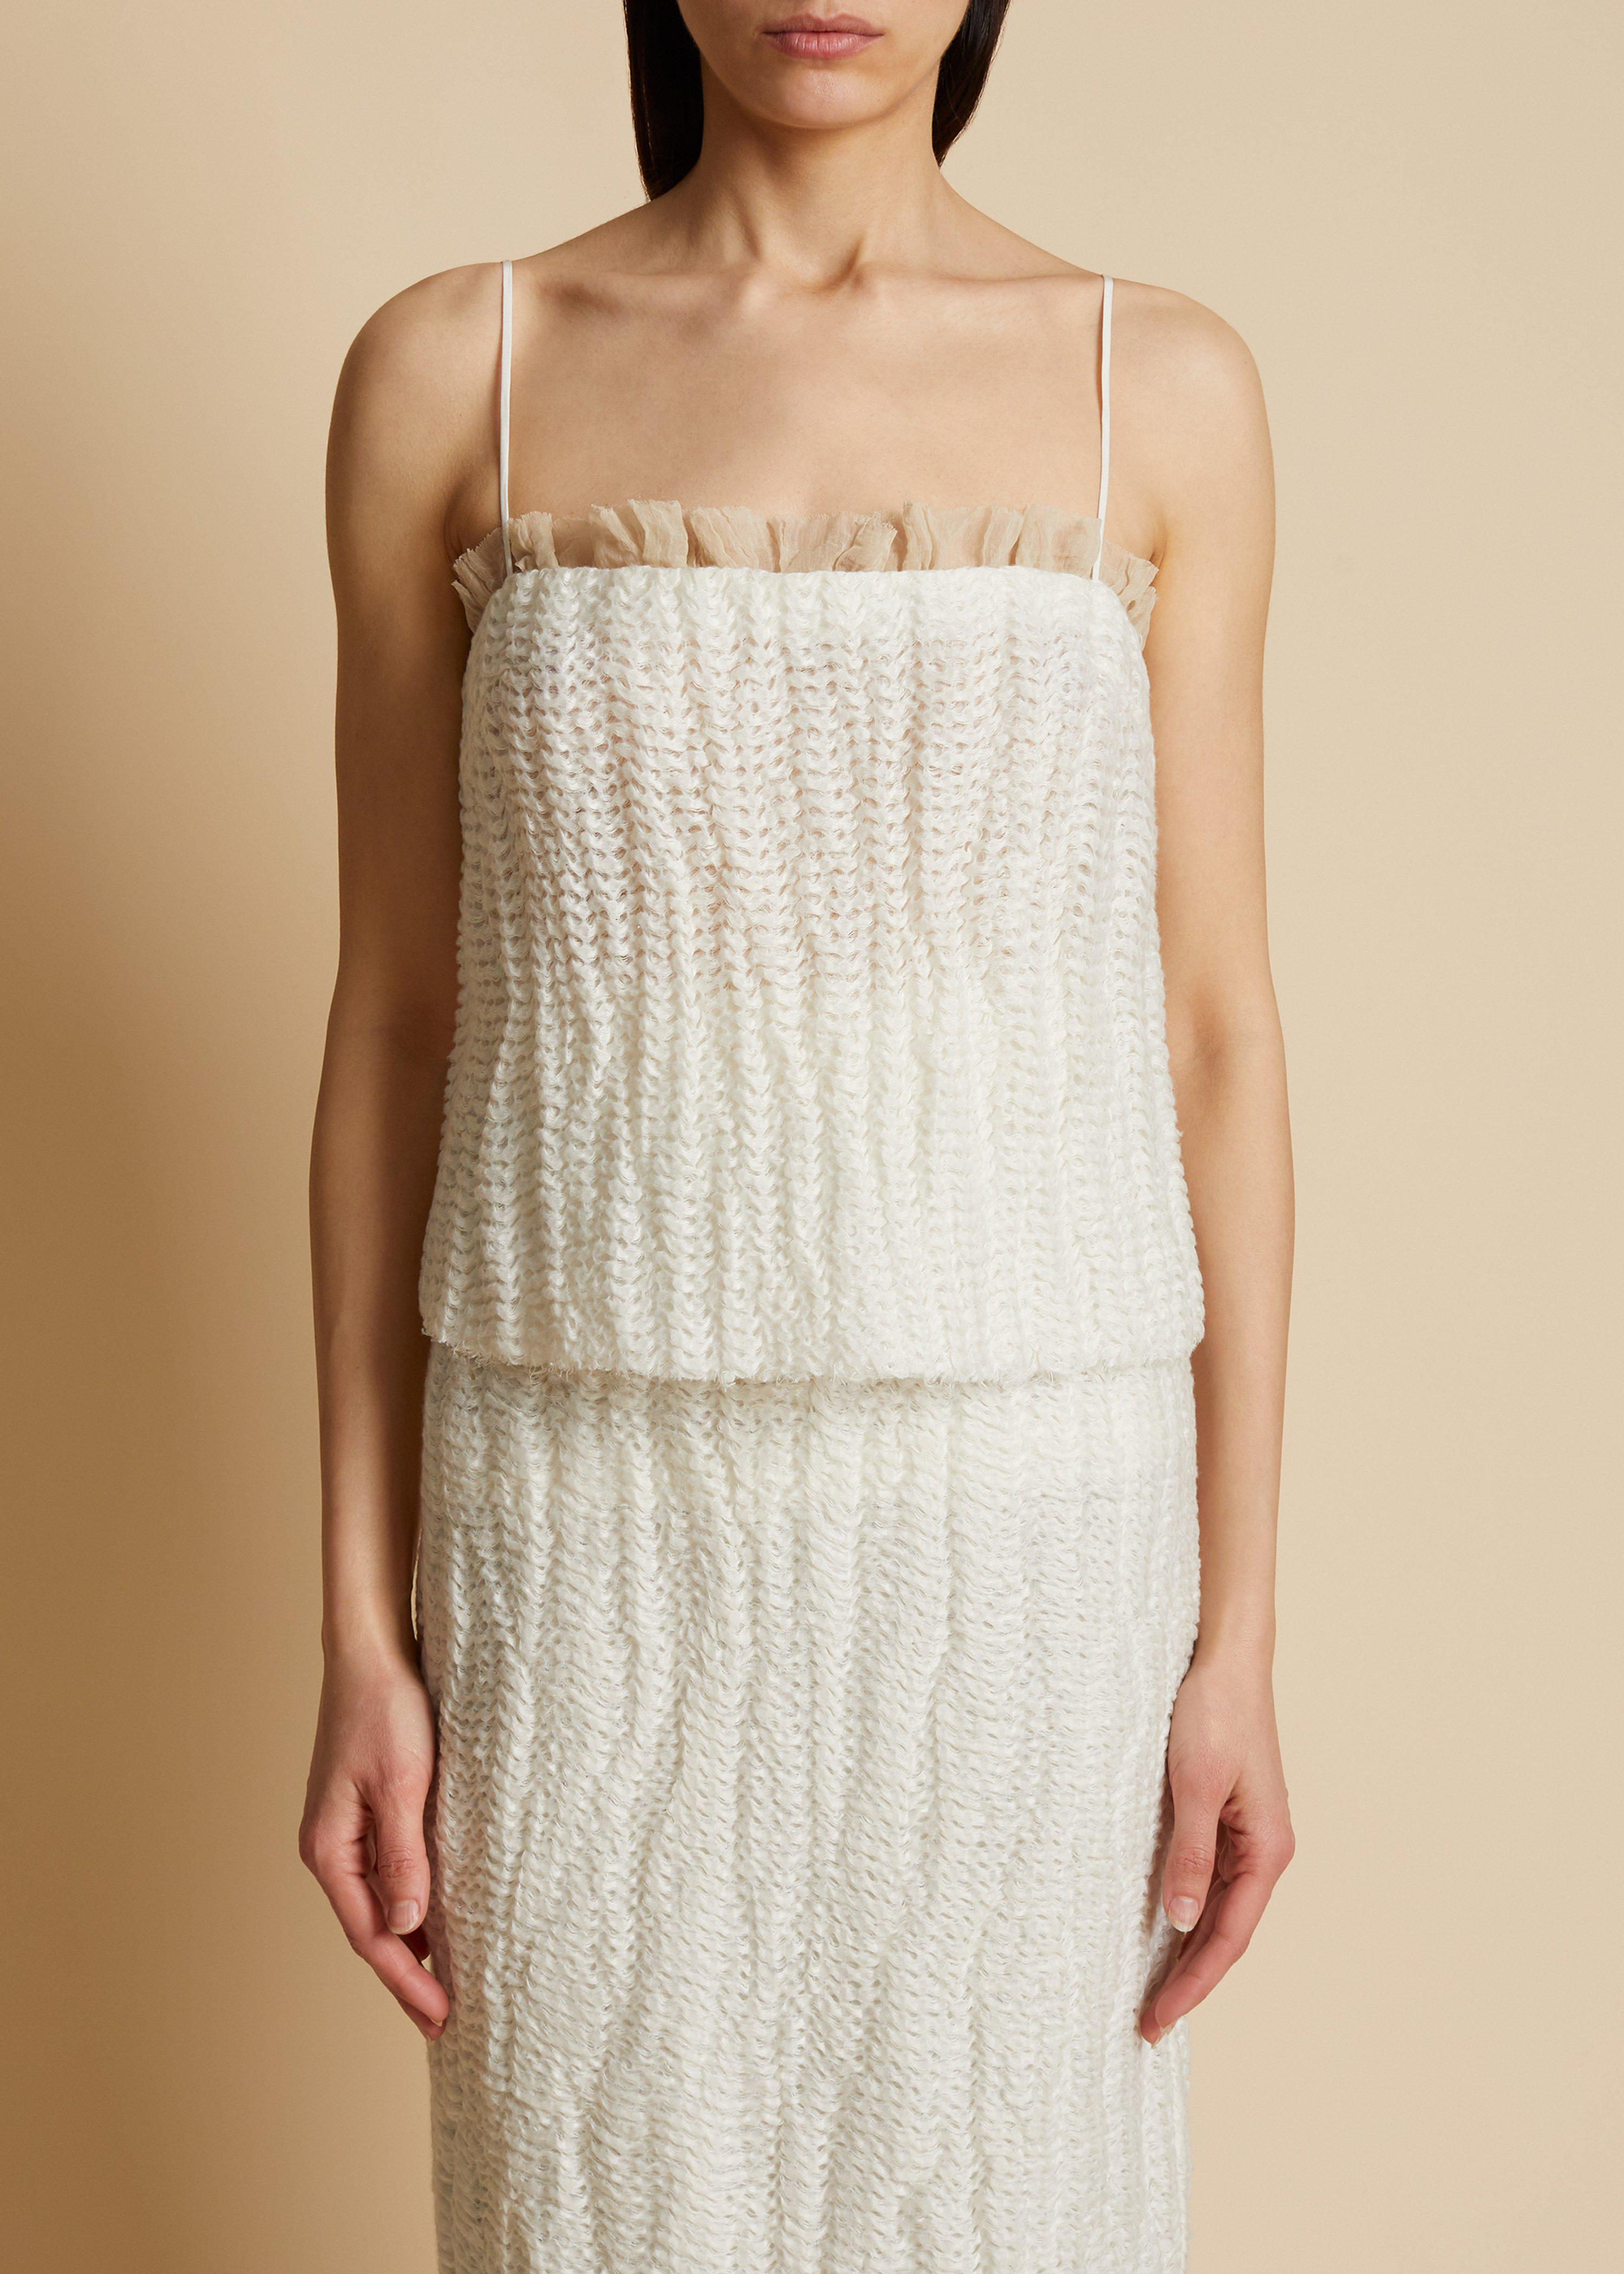 The Susanna Tank in Ivory